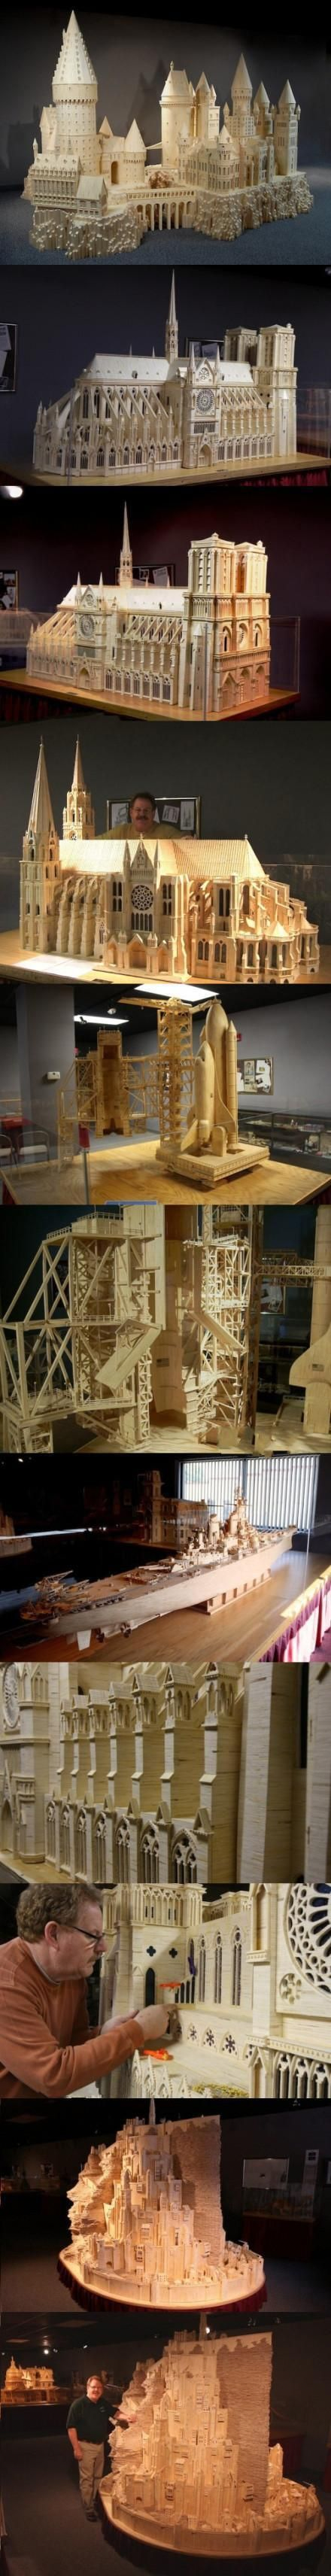 amazing art - Patrick Acton's 420,000-matchstick model of Tolkien's Minas Tirith (City of Kings) which took almost 3 yrs 2 build